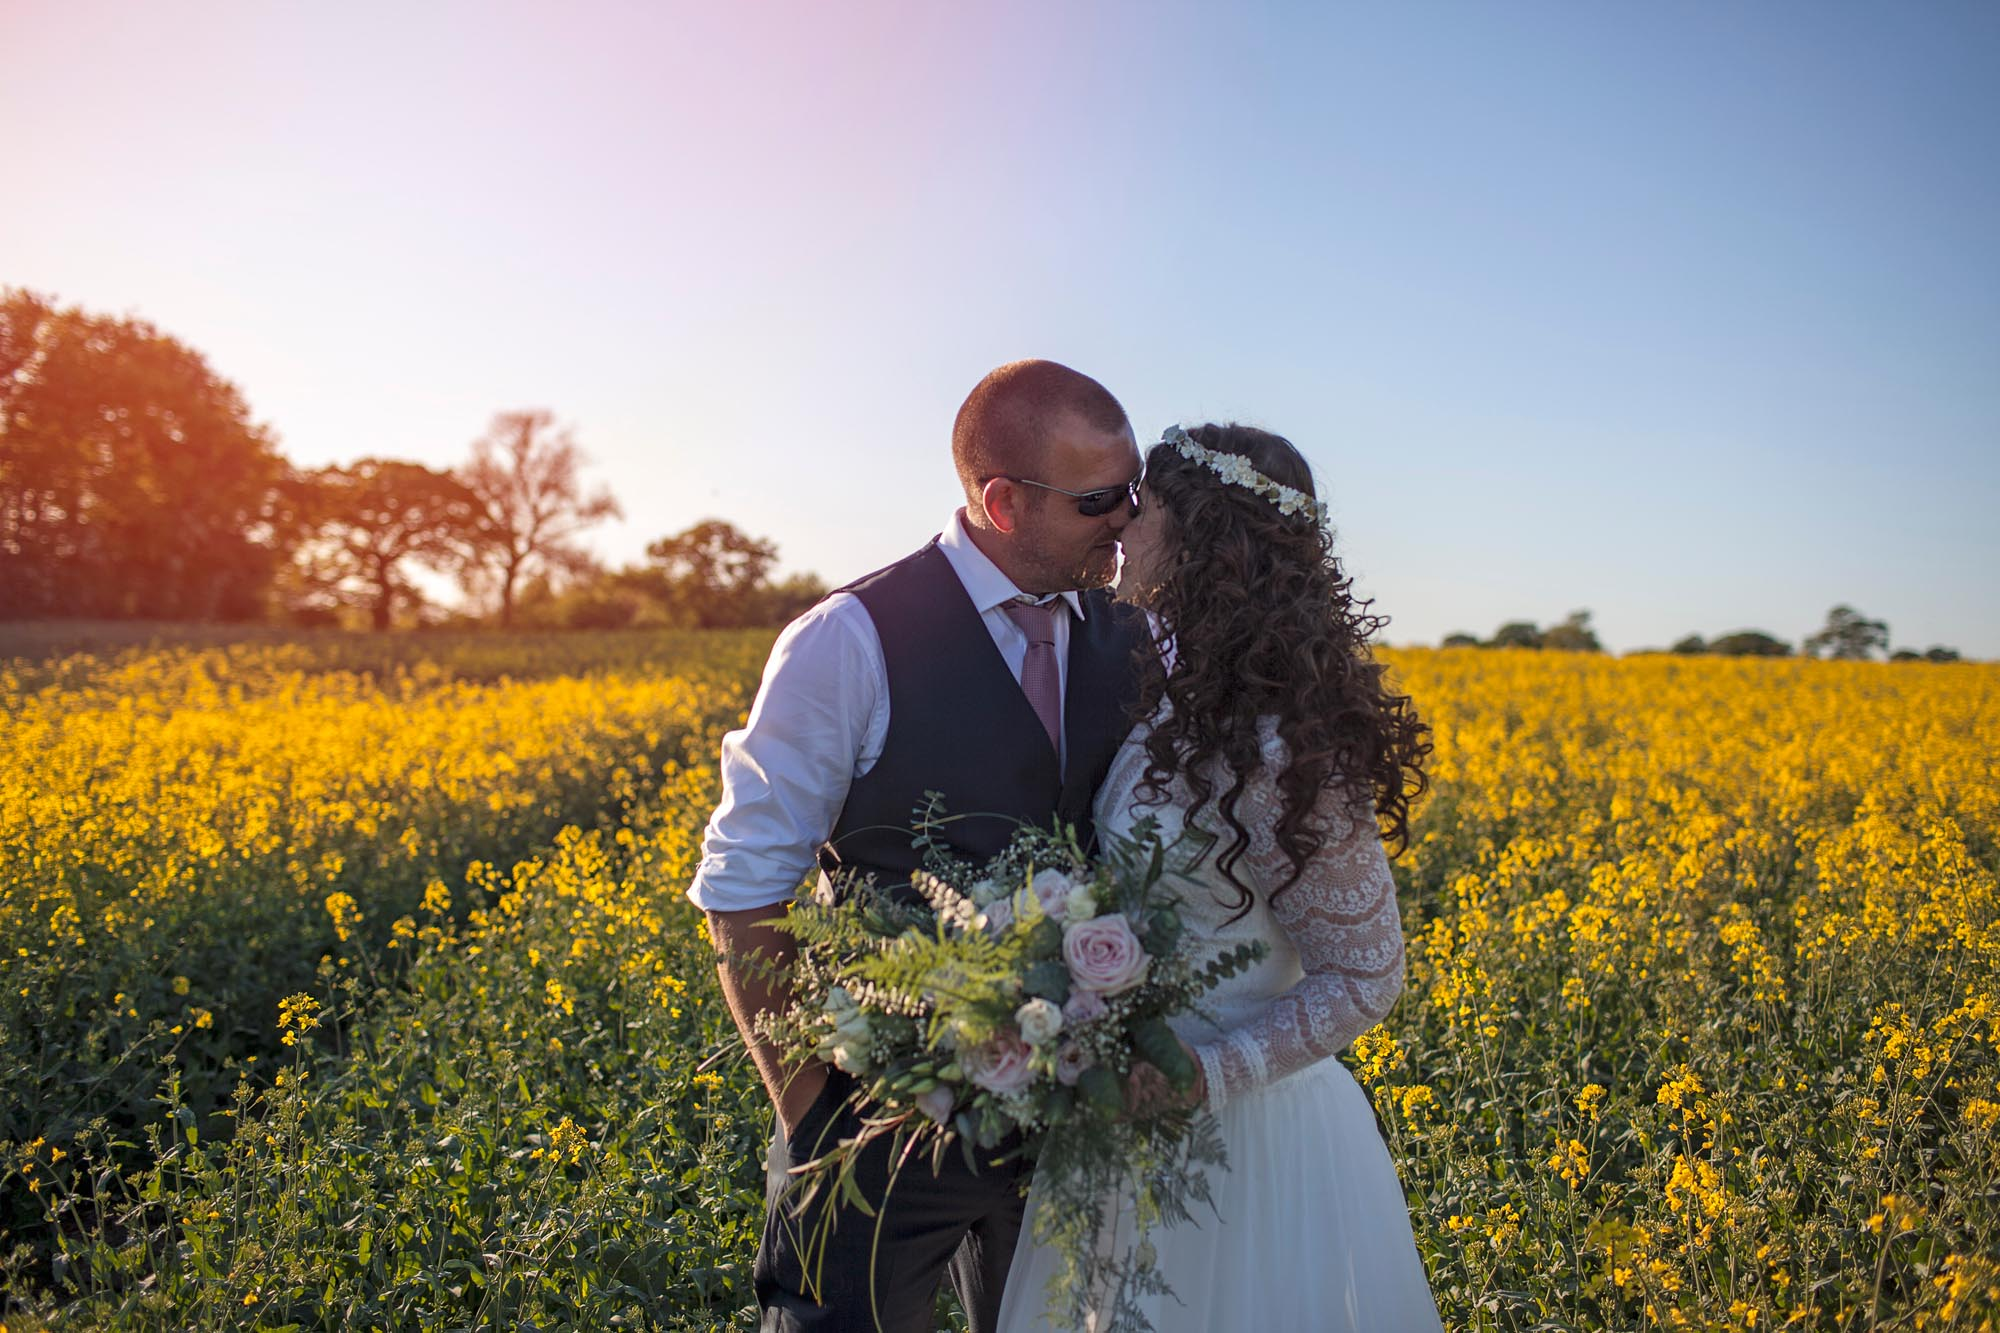 couple in love on they wedding day sunshine documentary photography cheshire leeds yorkshire